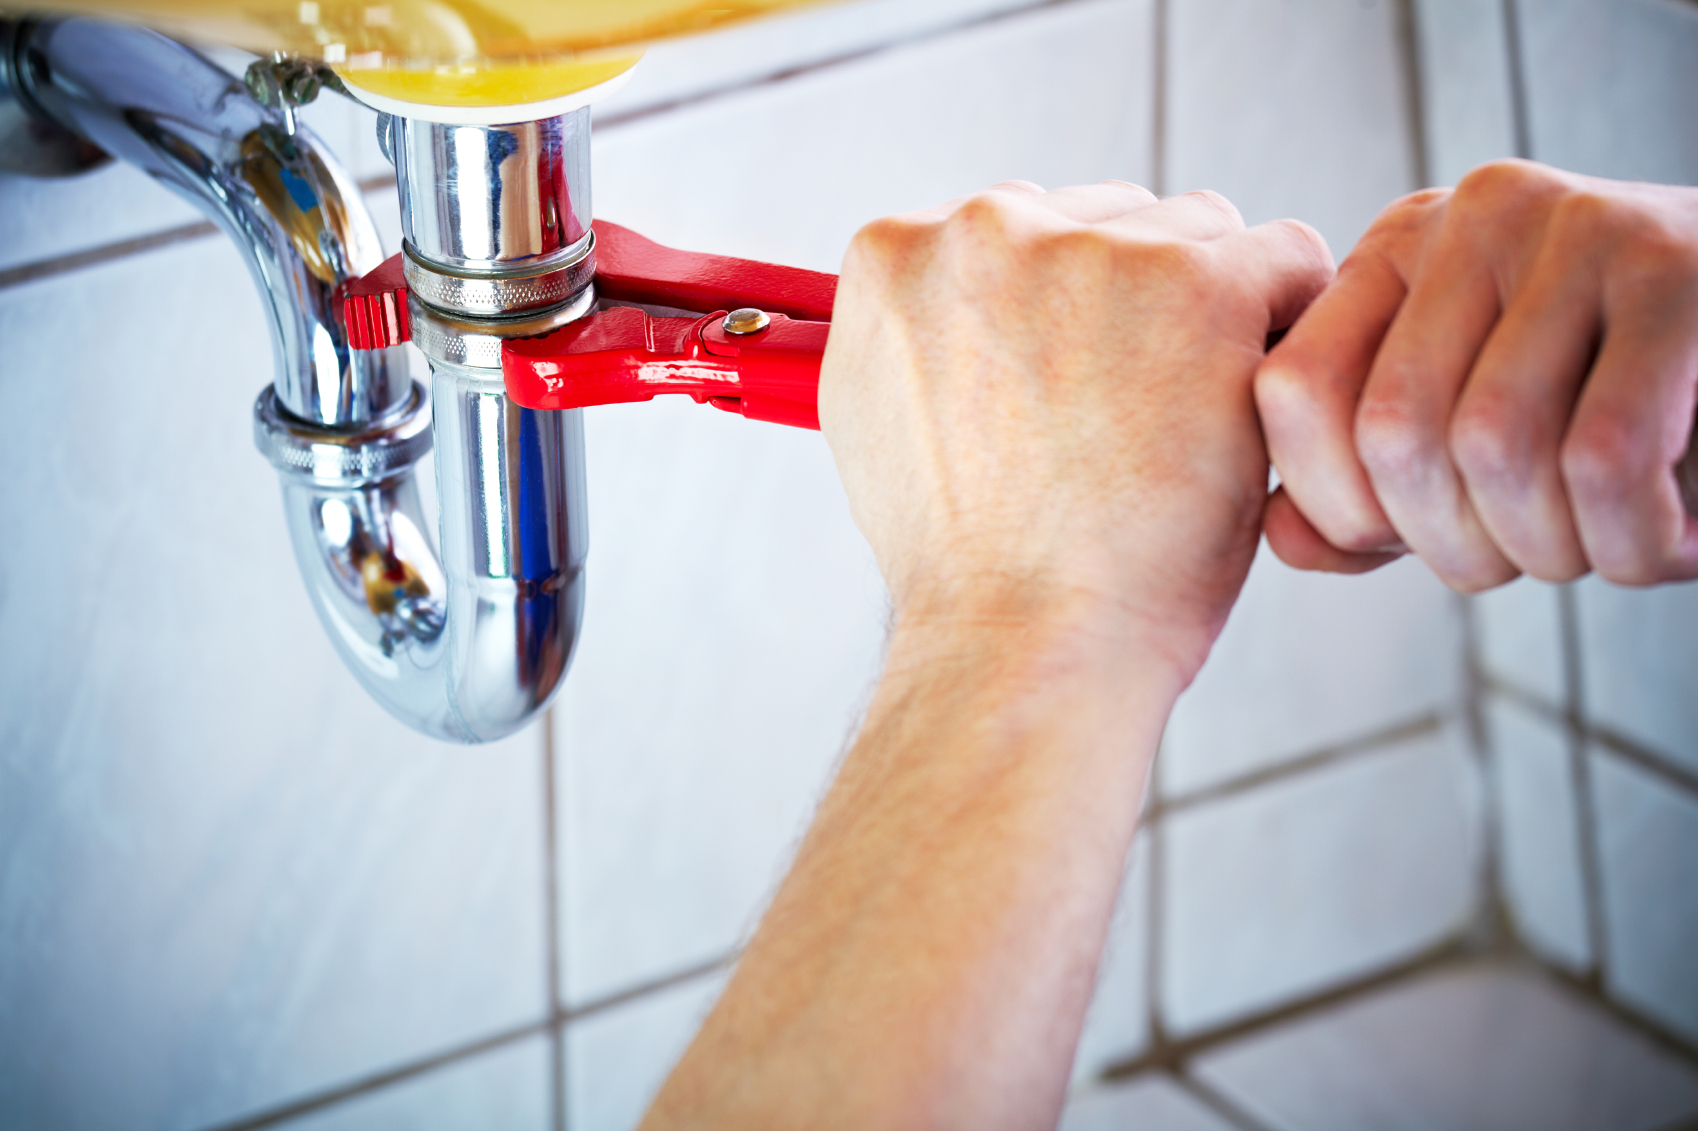 Plumbing Services Available to Washington Residents in the Anacortes Area